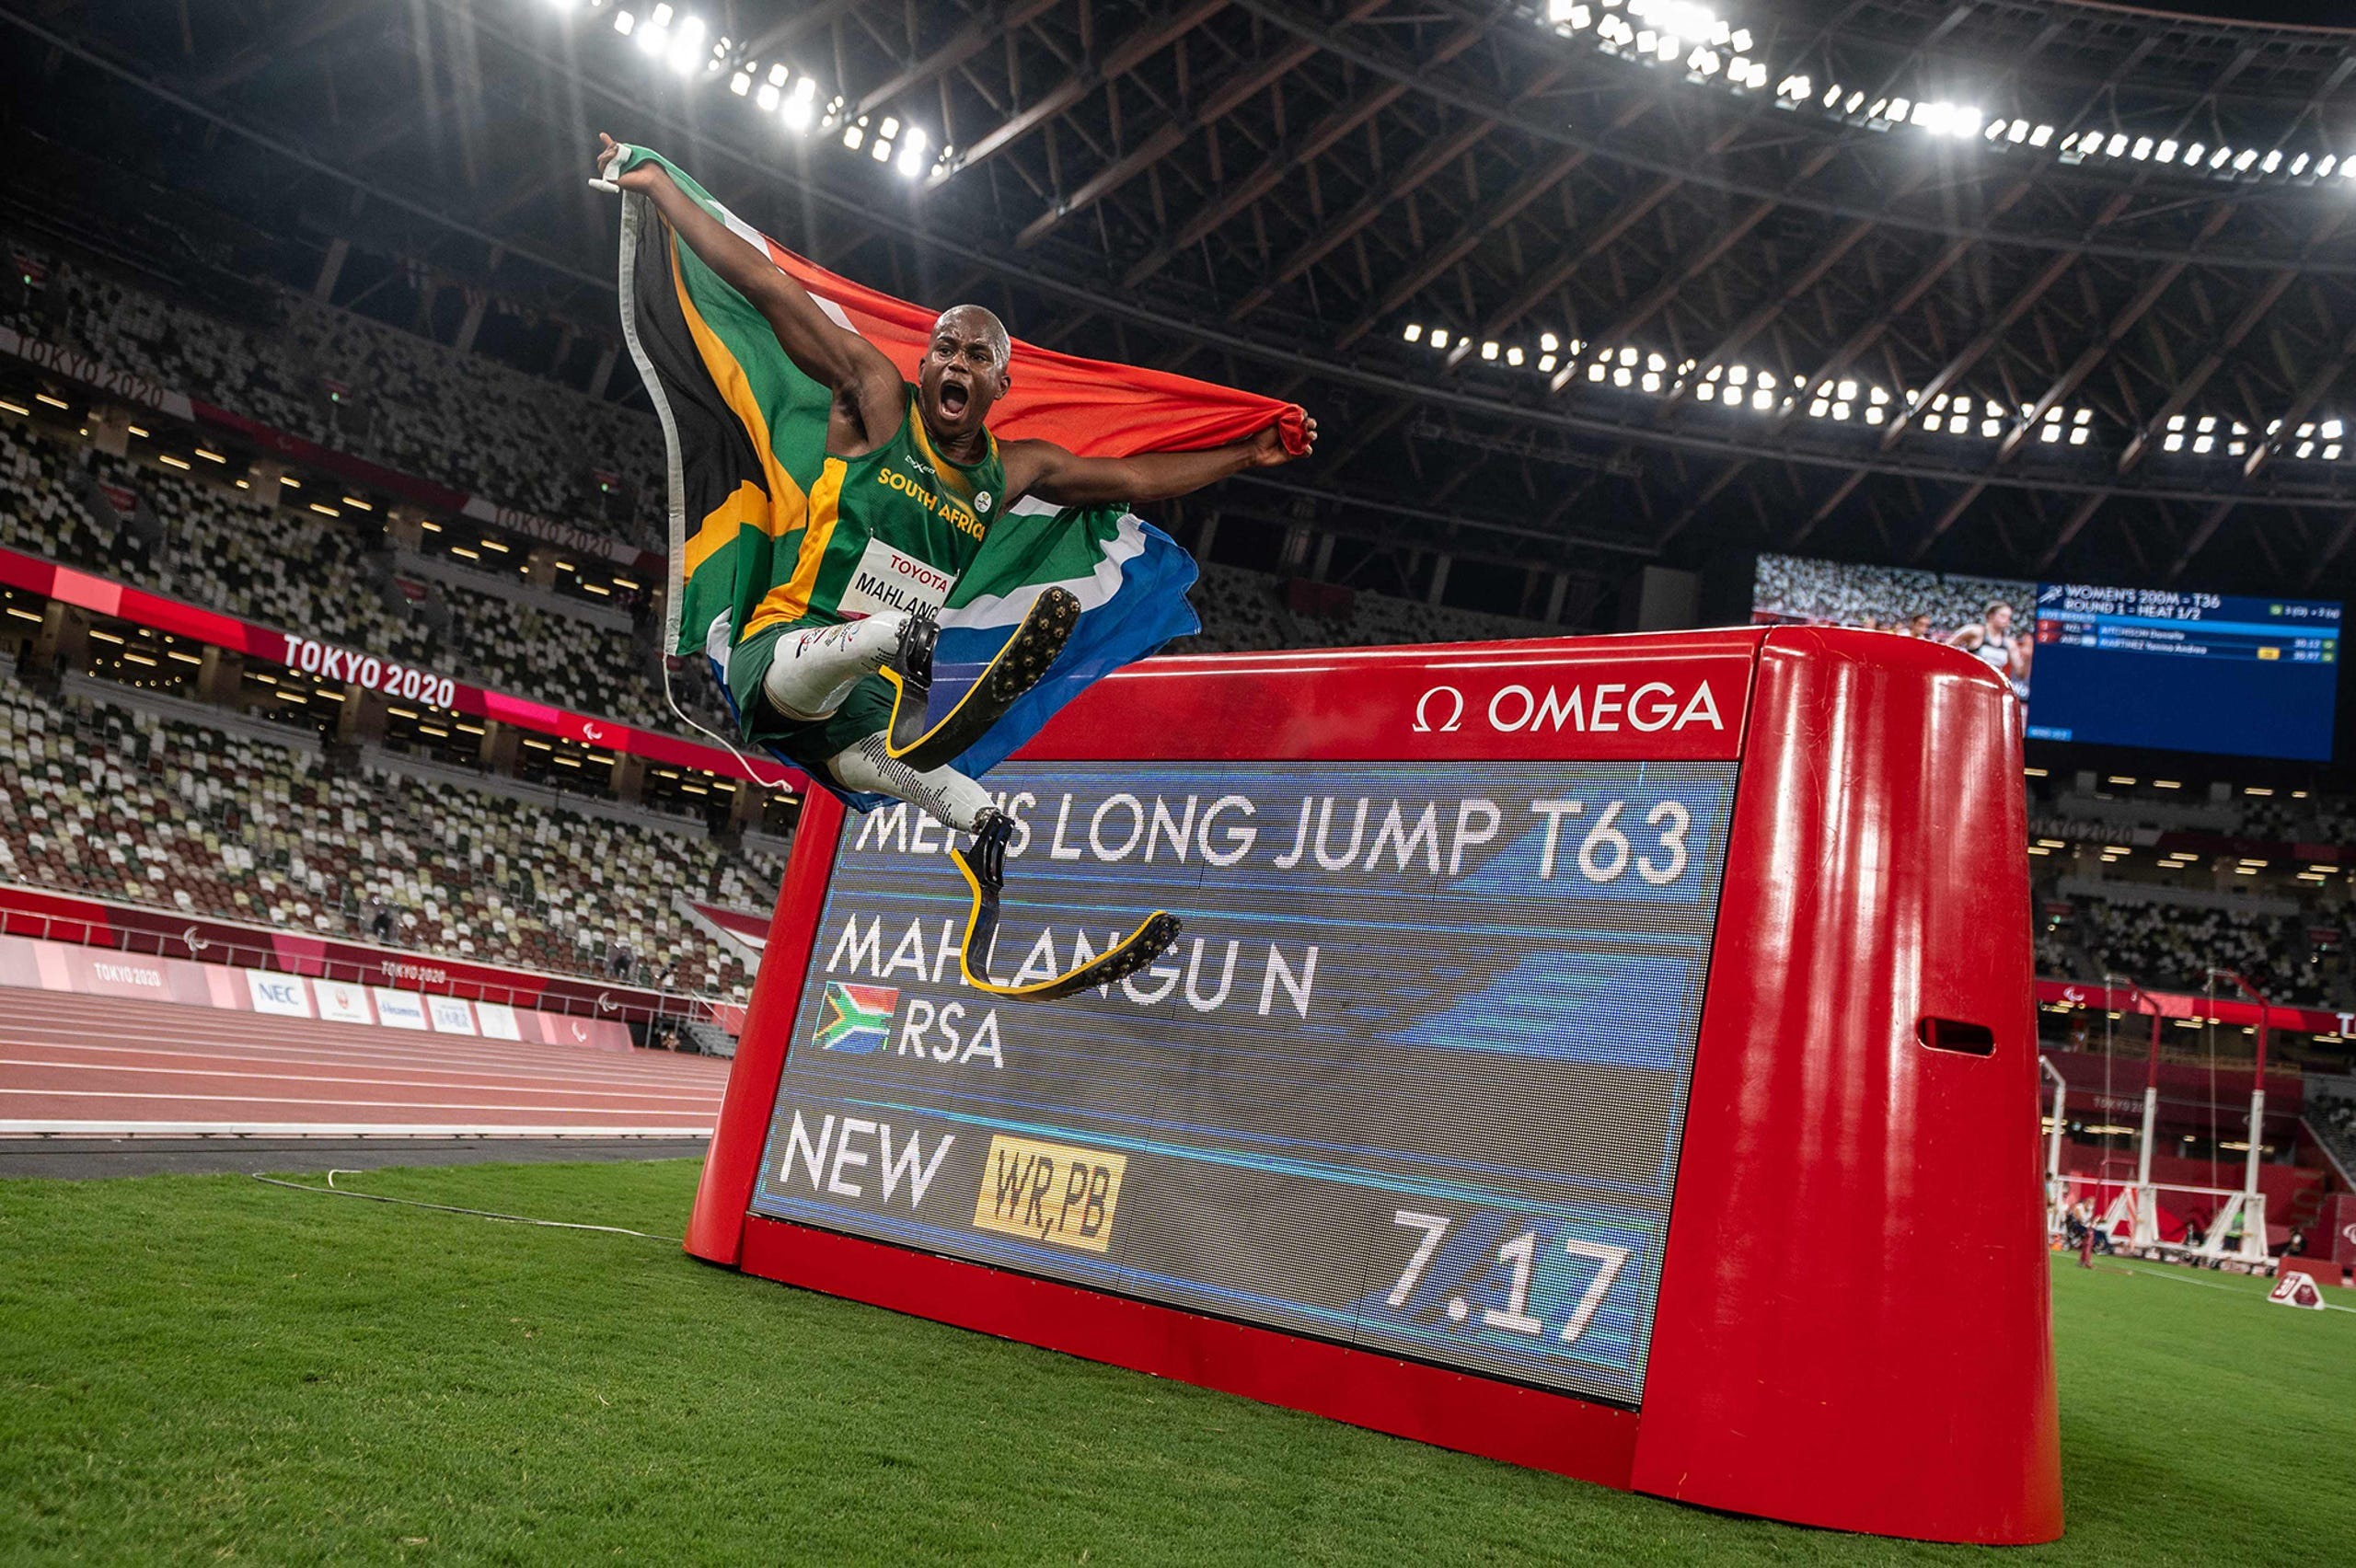 August 28, 2021: South Africa's Ntando Mahlangu celebrates after winning the men's long jump - T63 final of the Tokyo 2020 Paralympic Games at the Olympic Stadium in Tokyo.